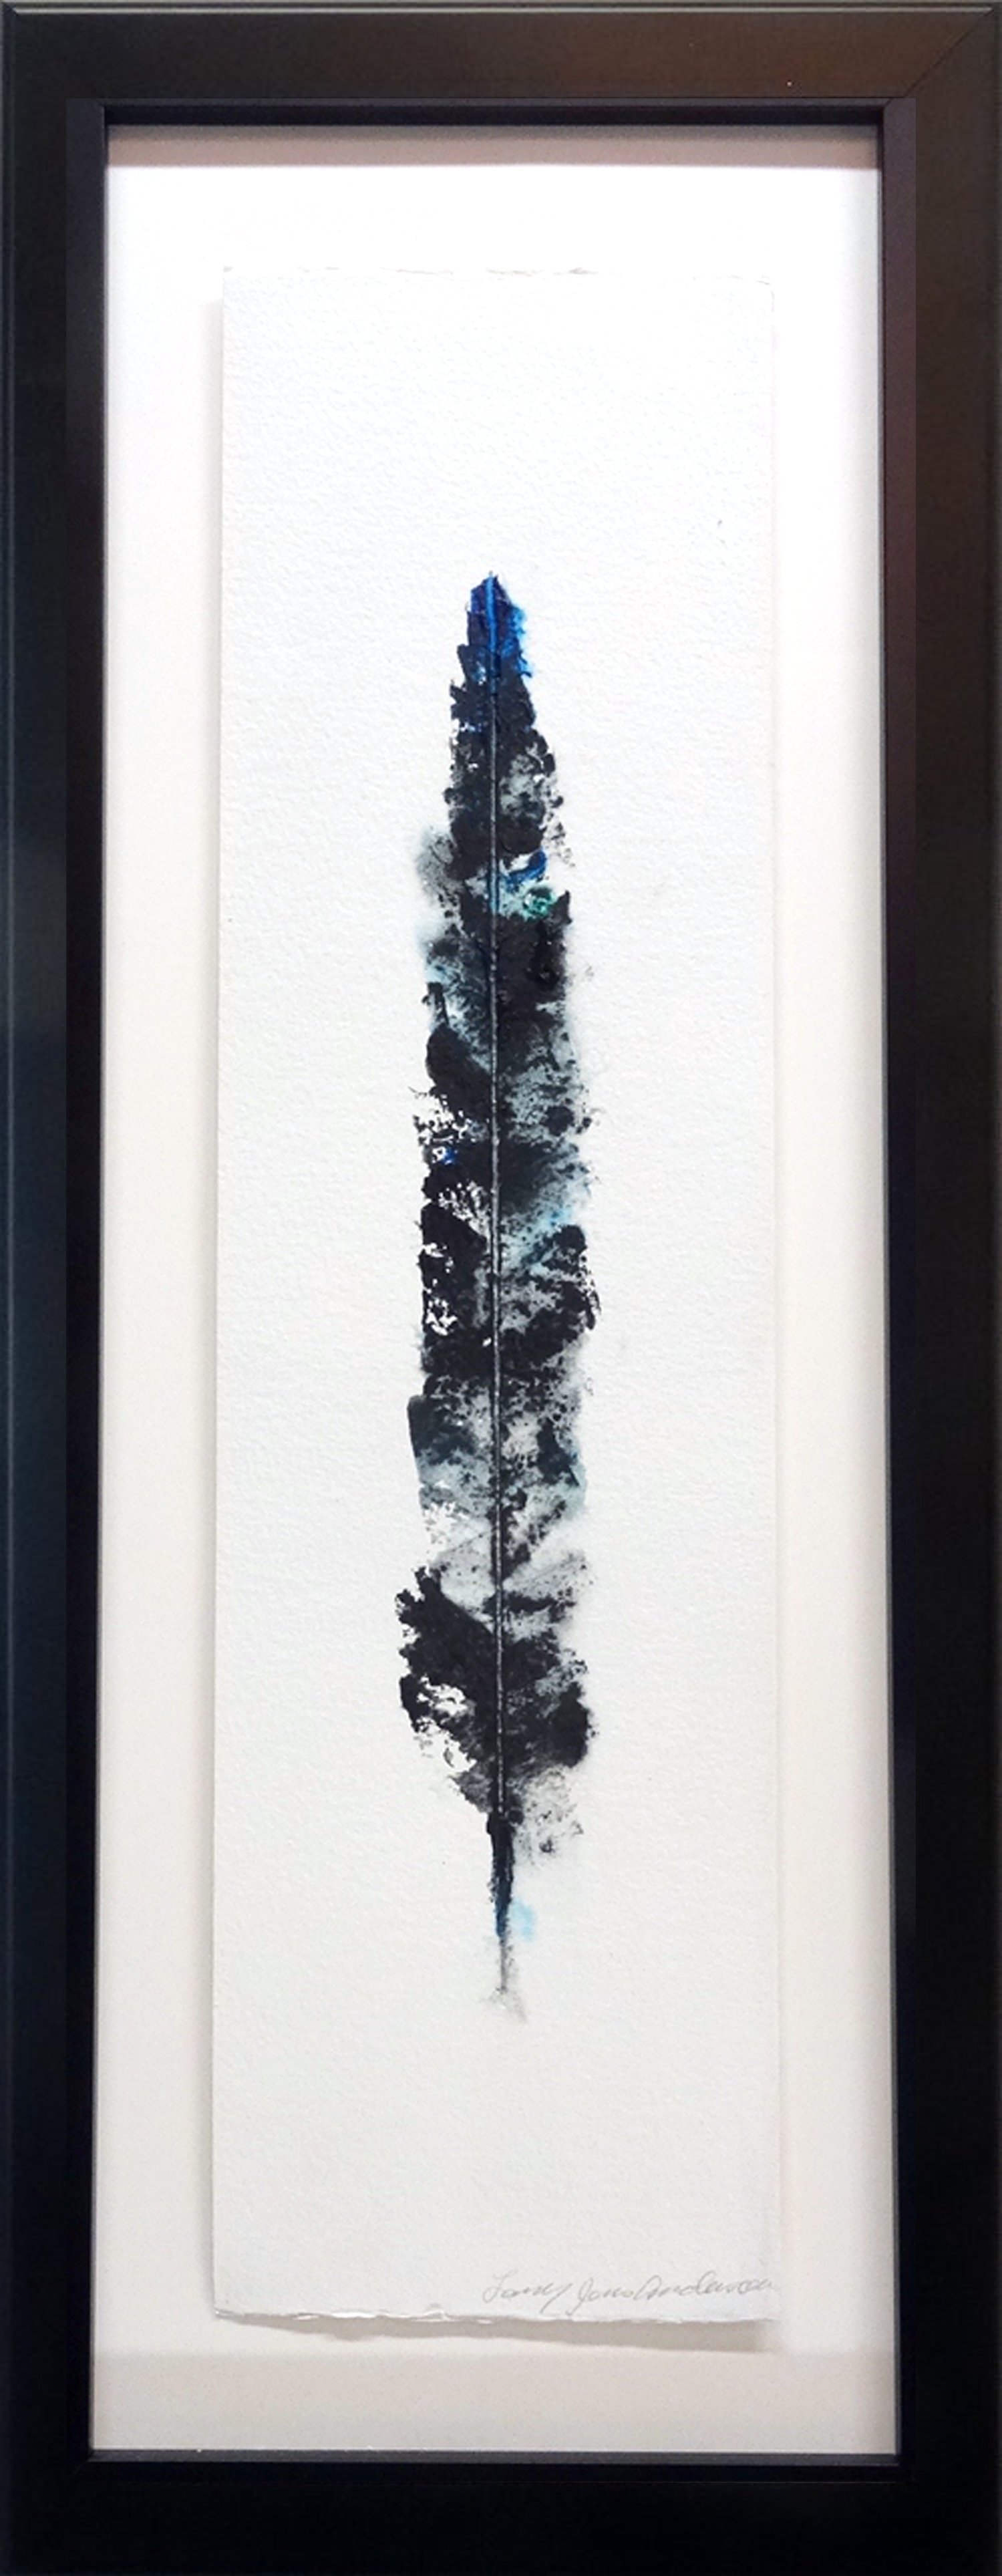 LARRY JENS ANDERSON SOLO FEATHER 2 ACRYLIC ON LAYERED WATERCOLOR PAPER IN SHADOWBOX FRAME 27 X 10 INCHES LJA 198G.jpg